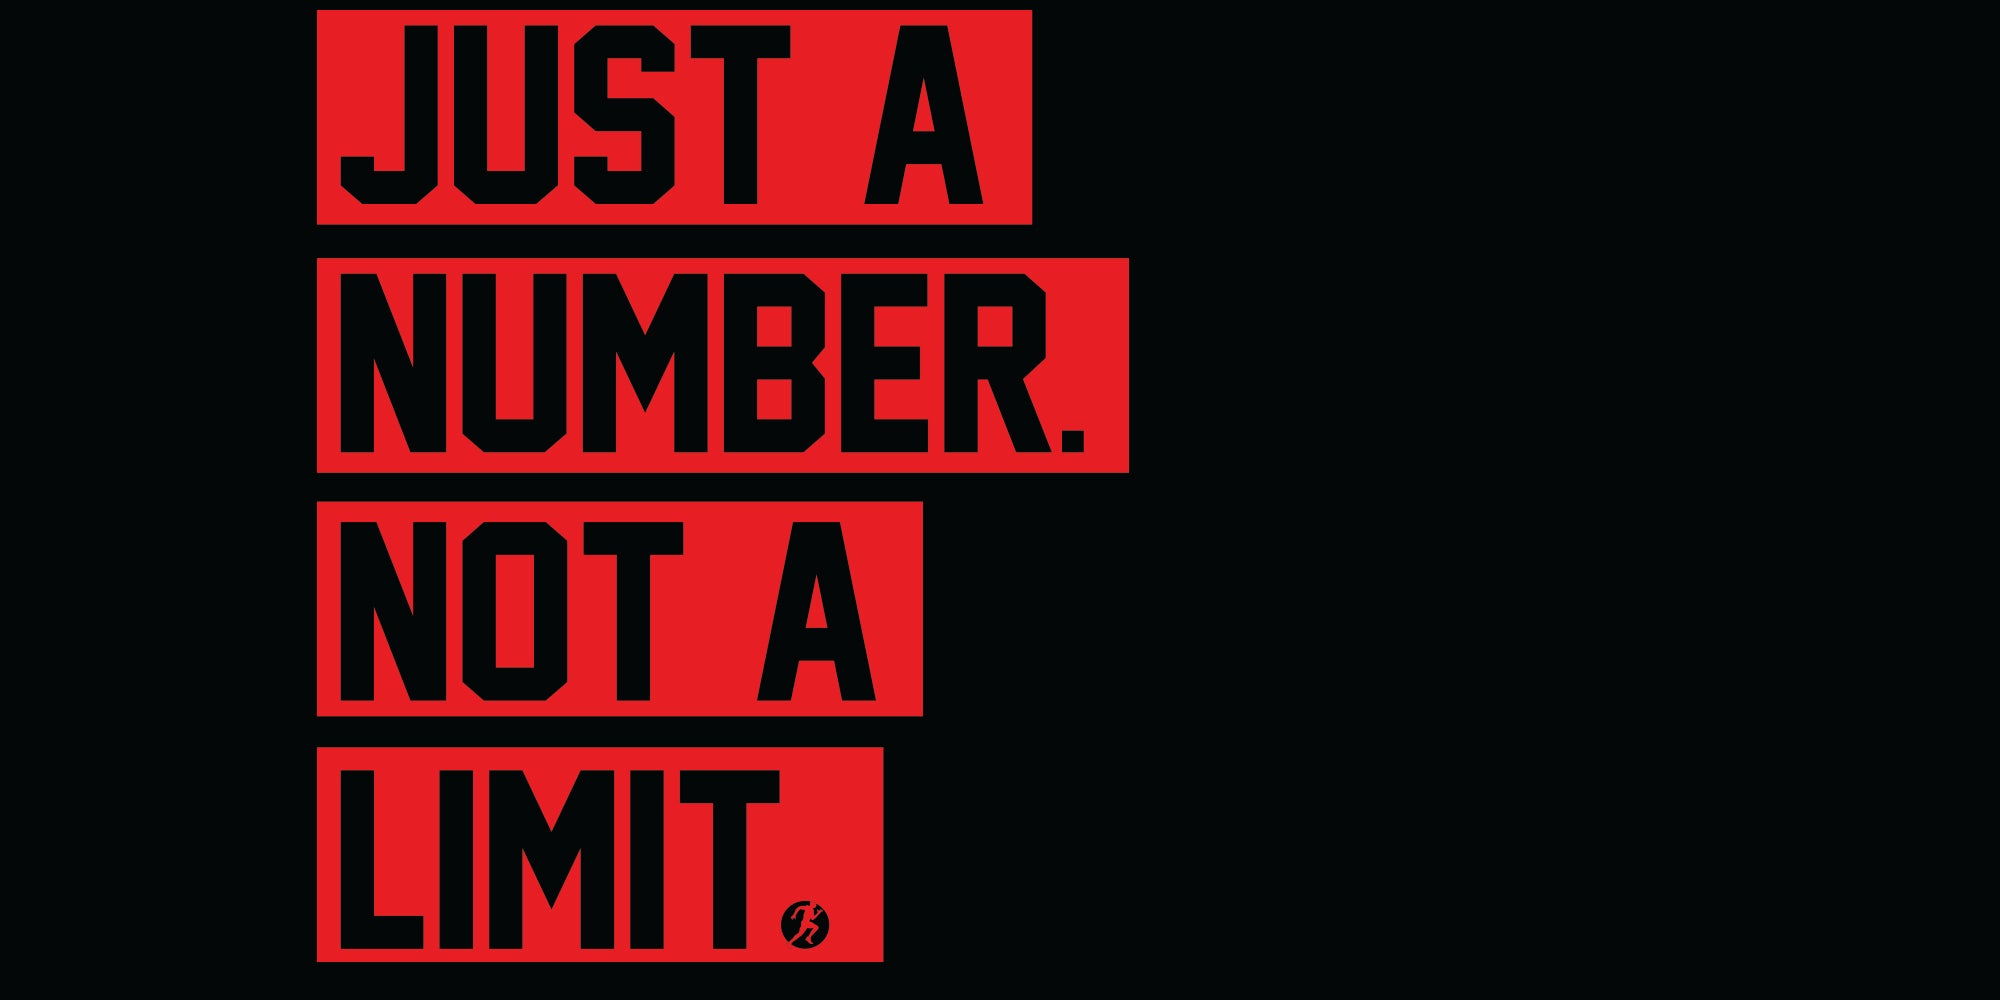 Just A Number - Not a Limit